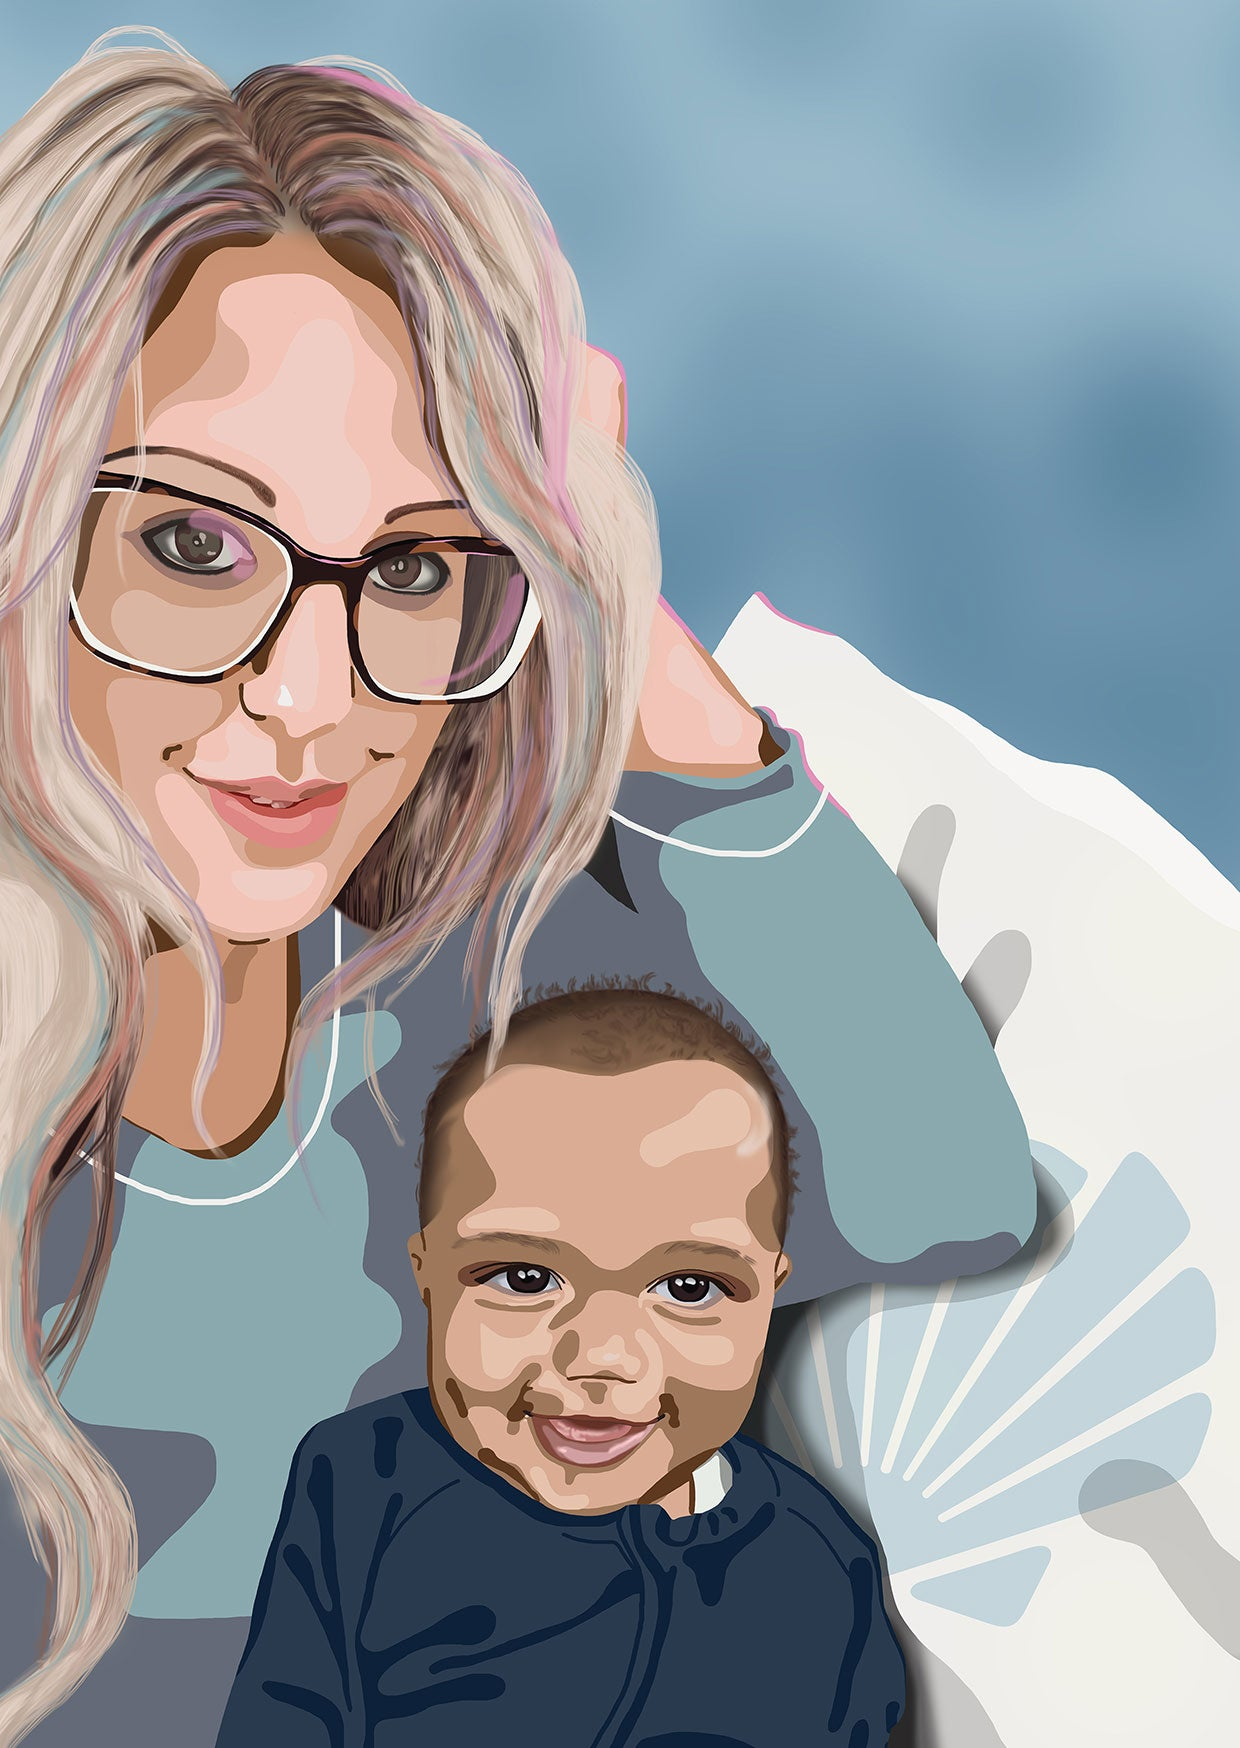 Mother and baby digital portrait illustration gift for Mothers Day